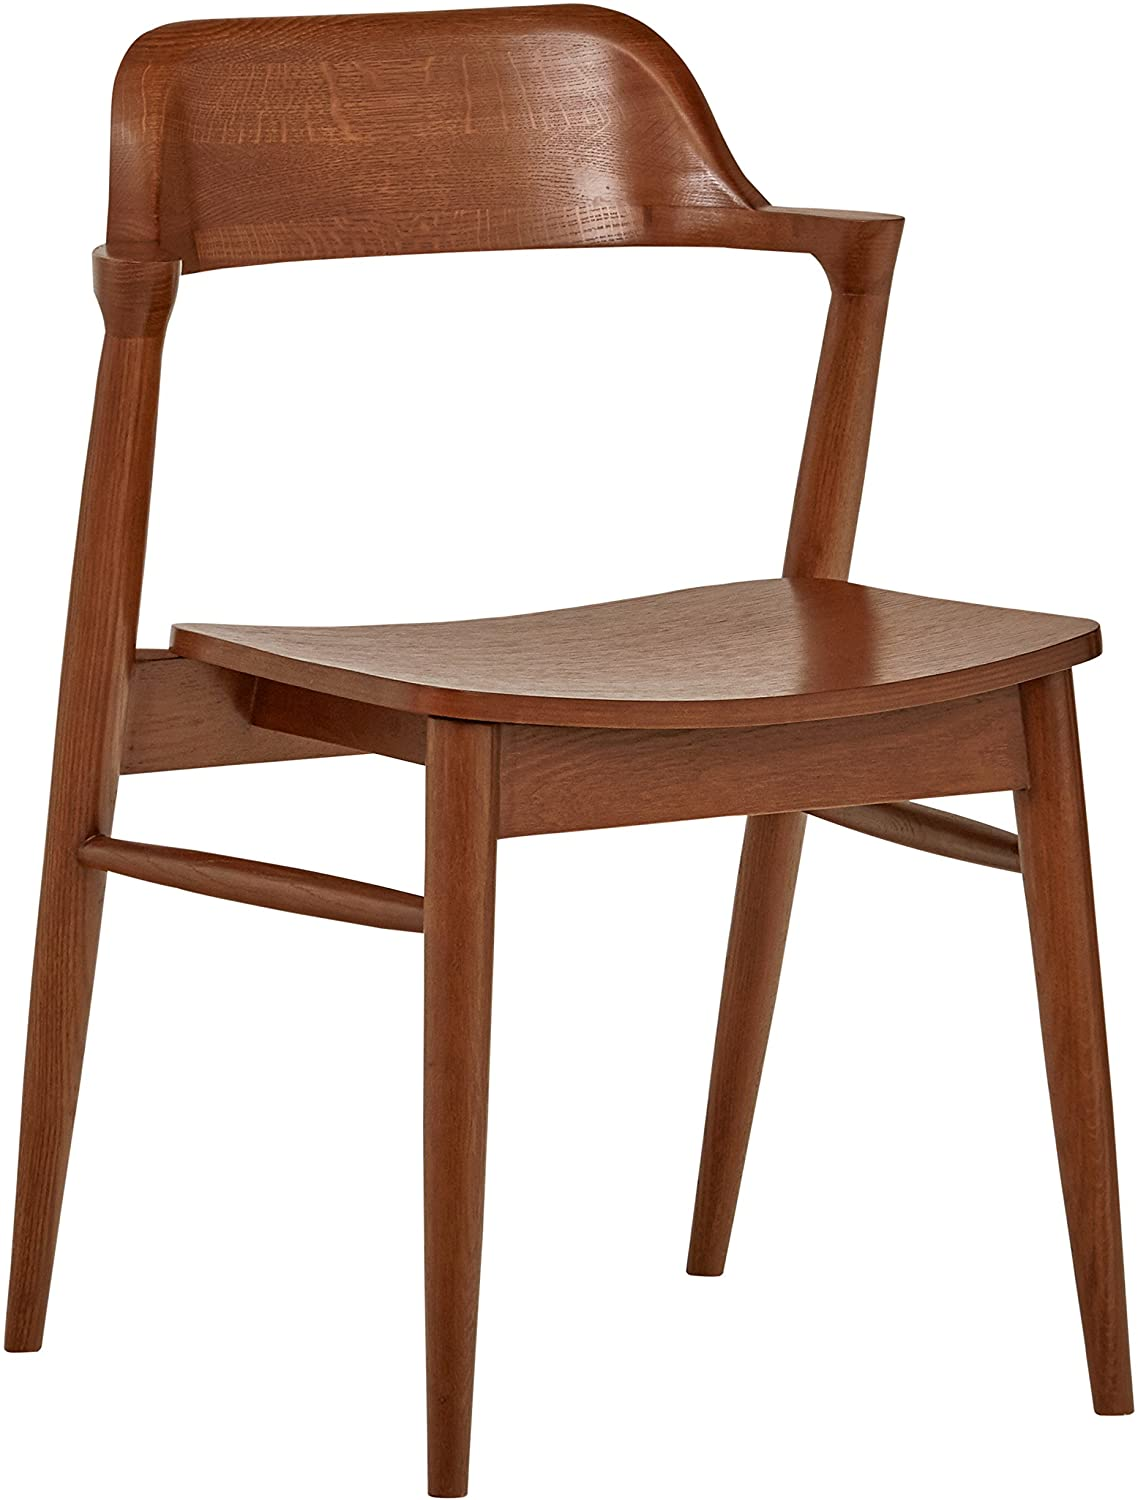 Rivet Mid-Century Modern Low-Back Dining Chair